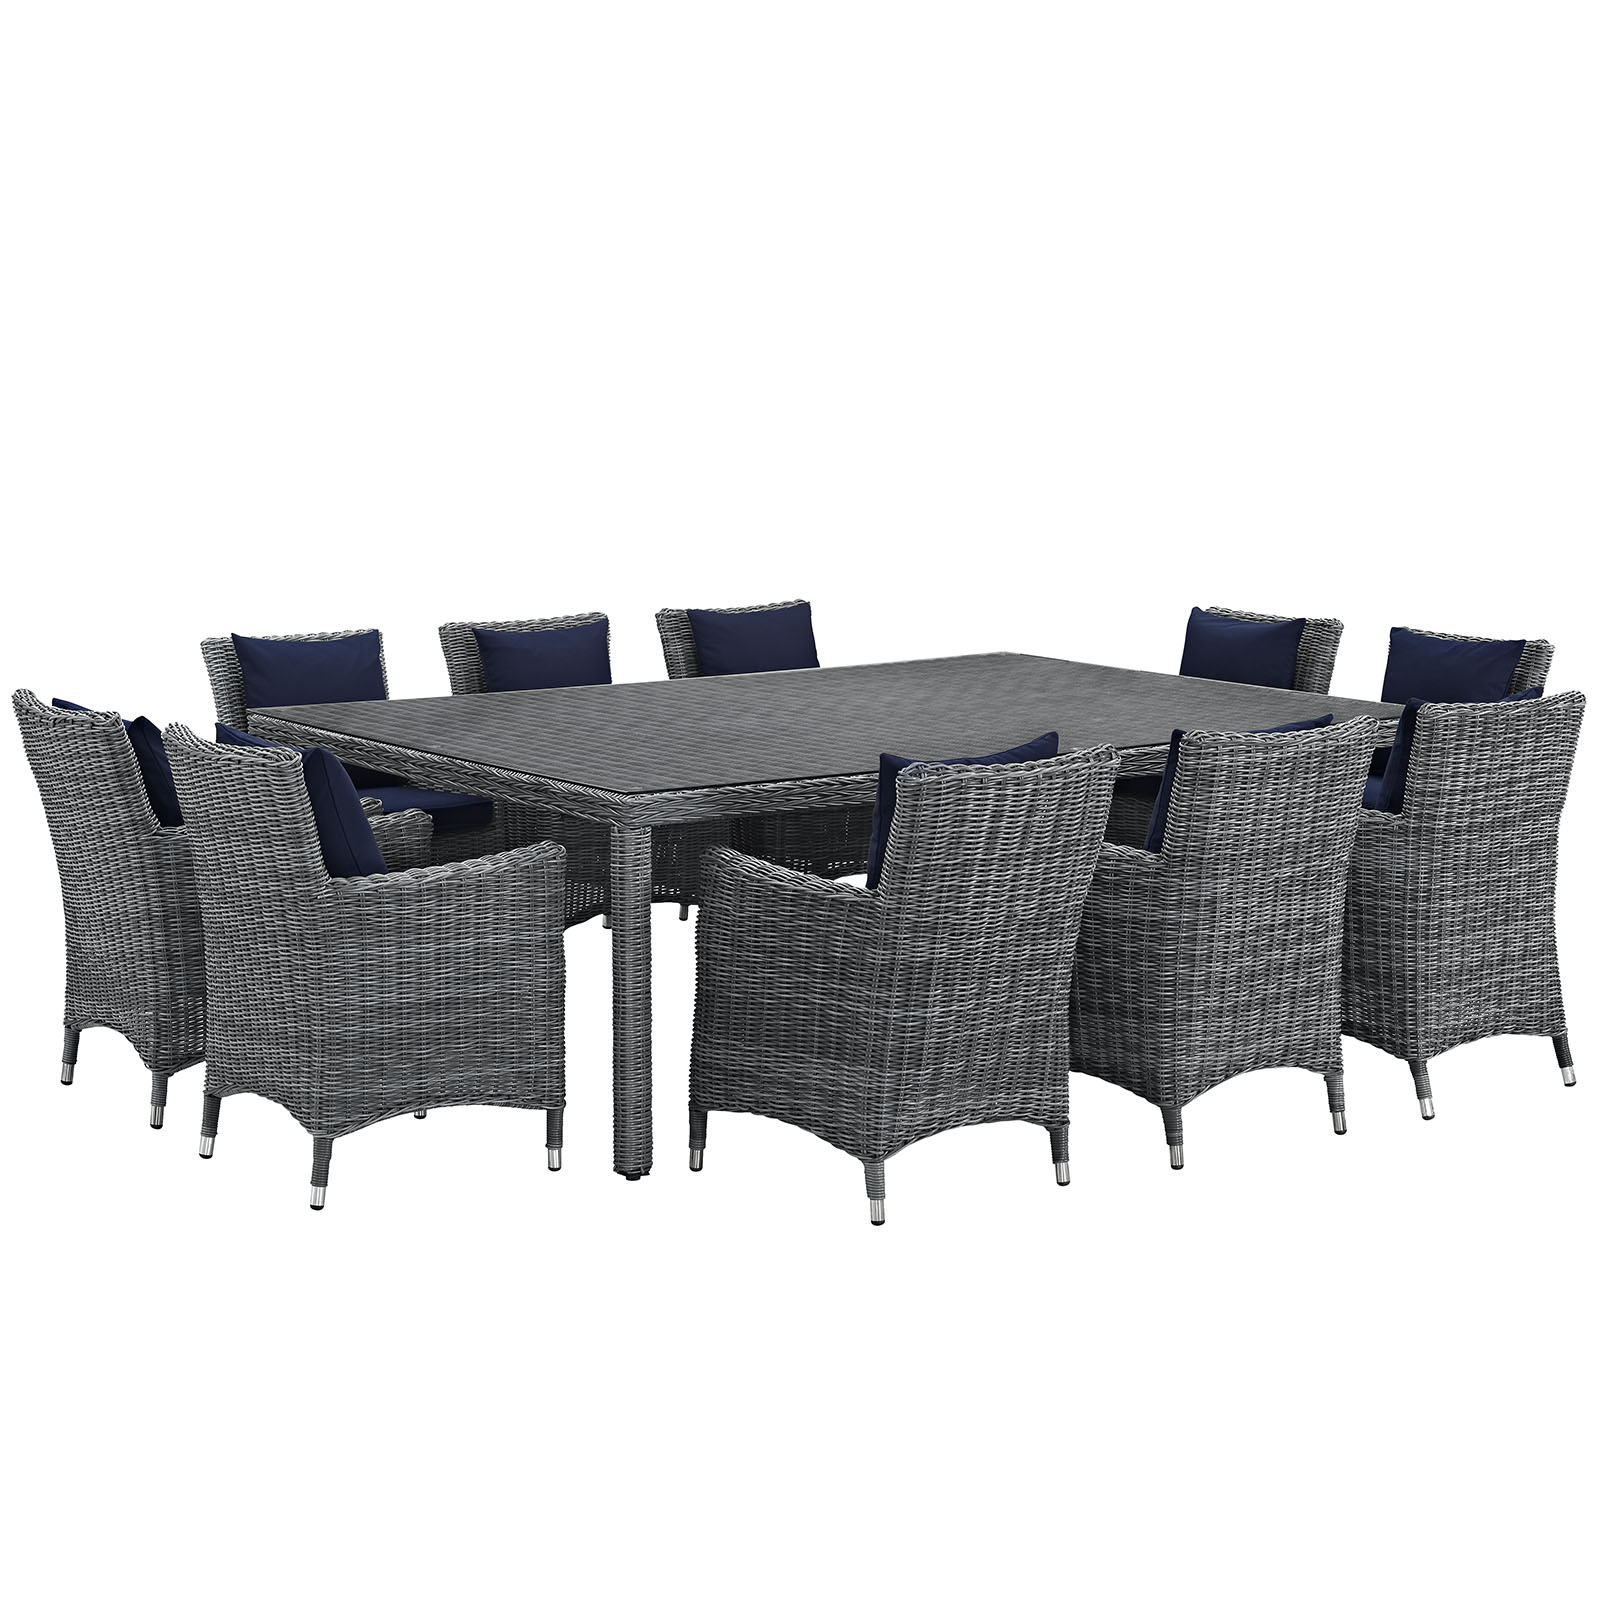 Modern Contemporary Urban Design Outdoor Patio Balcony Eleven PCS Dining Chairs and Table Set, Navy Blue, Rattan